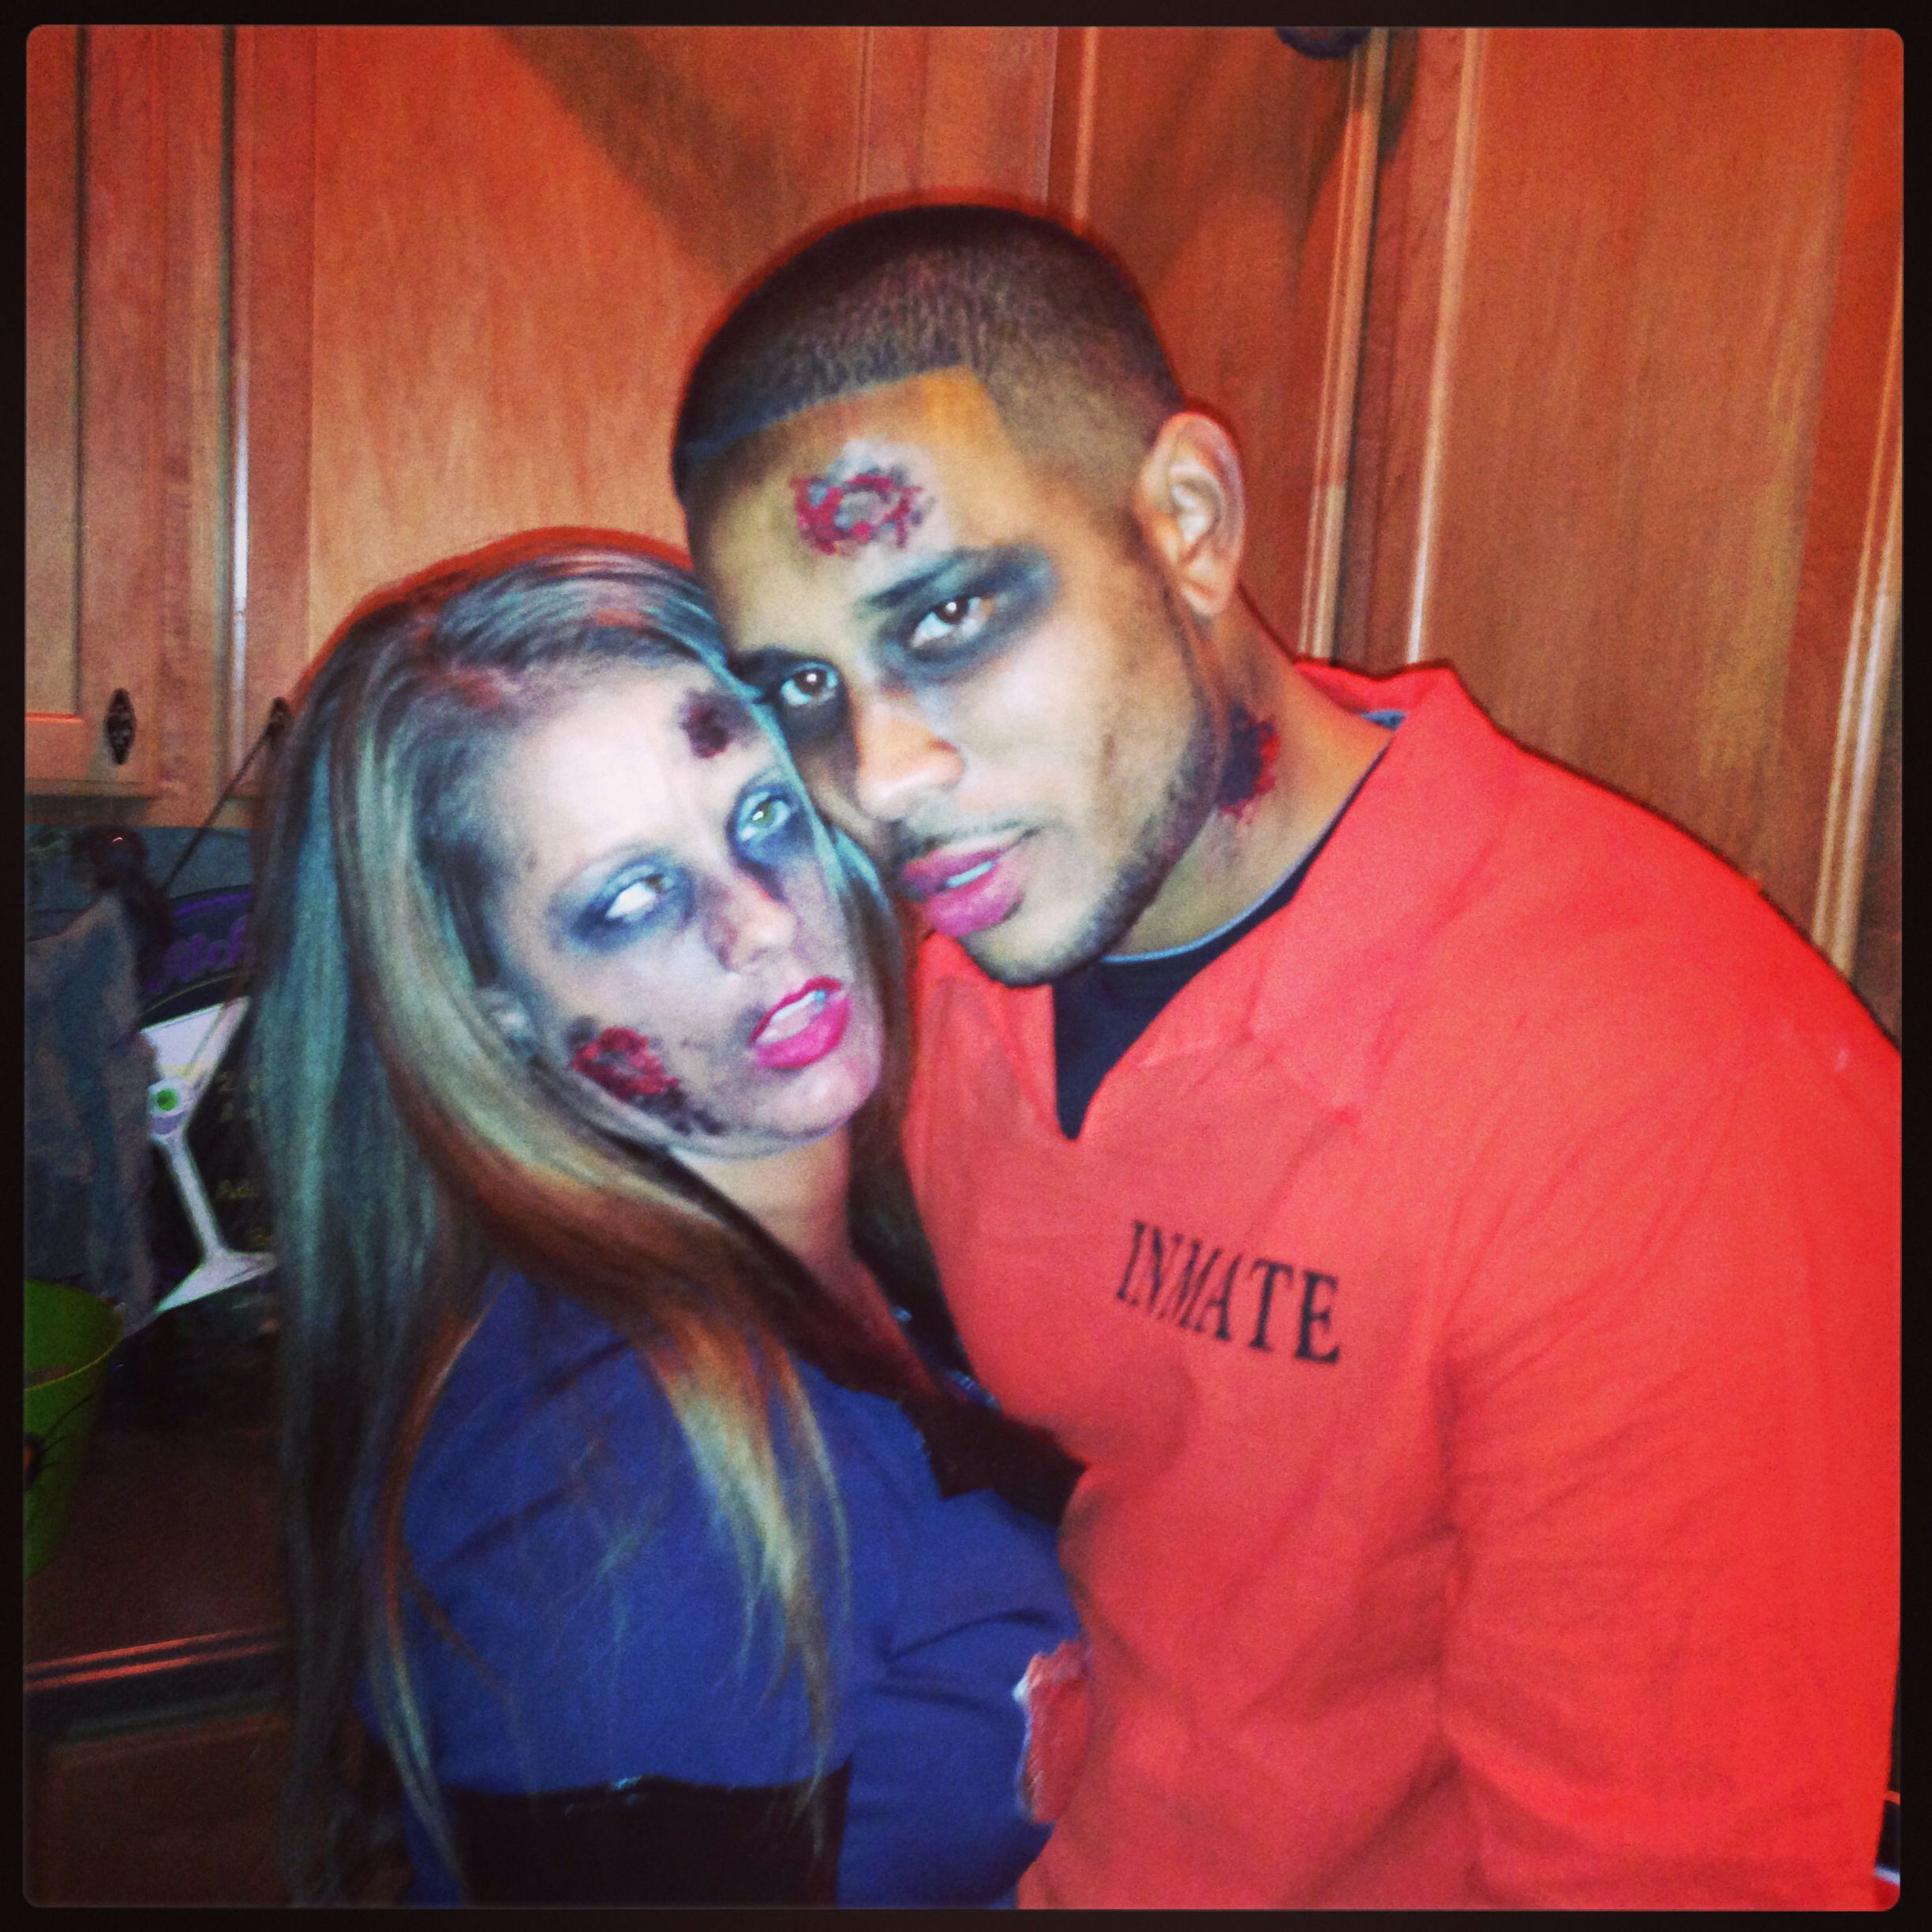 Zombie. Do your own zombie makeup:: Elmer's glue mixed with red food coloring